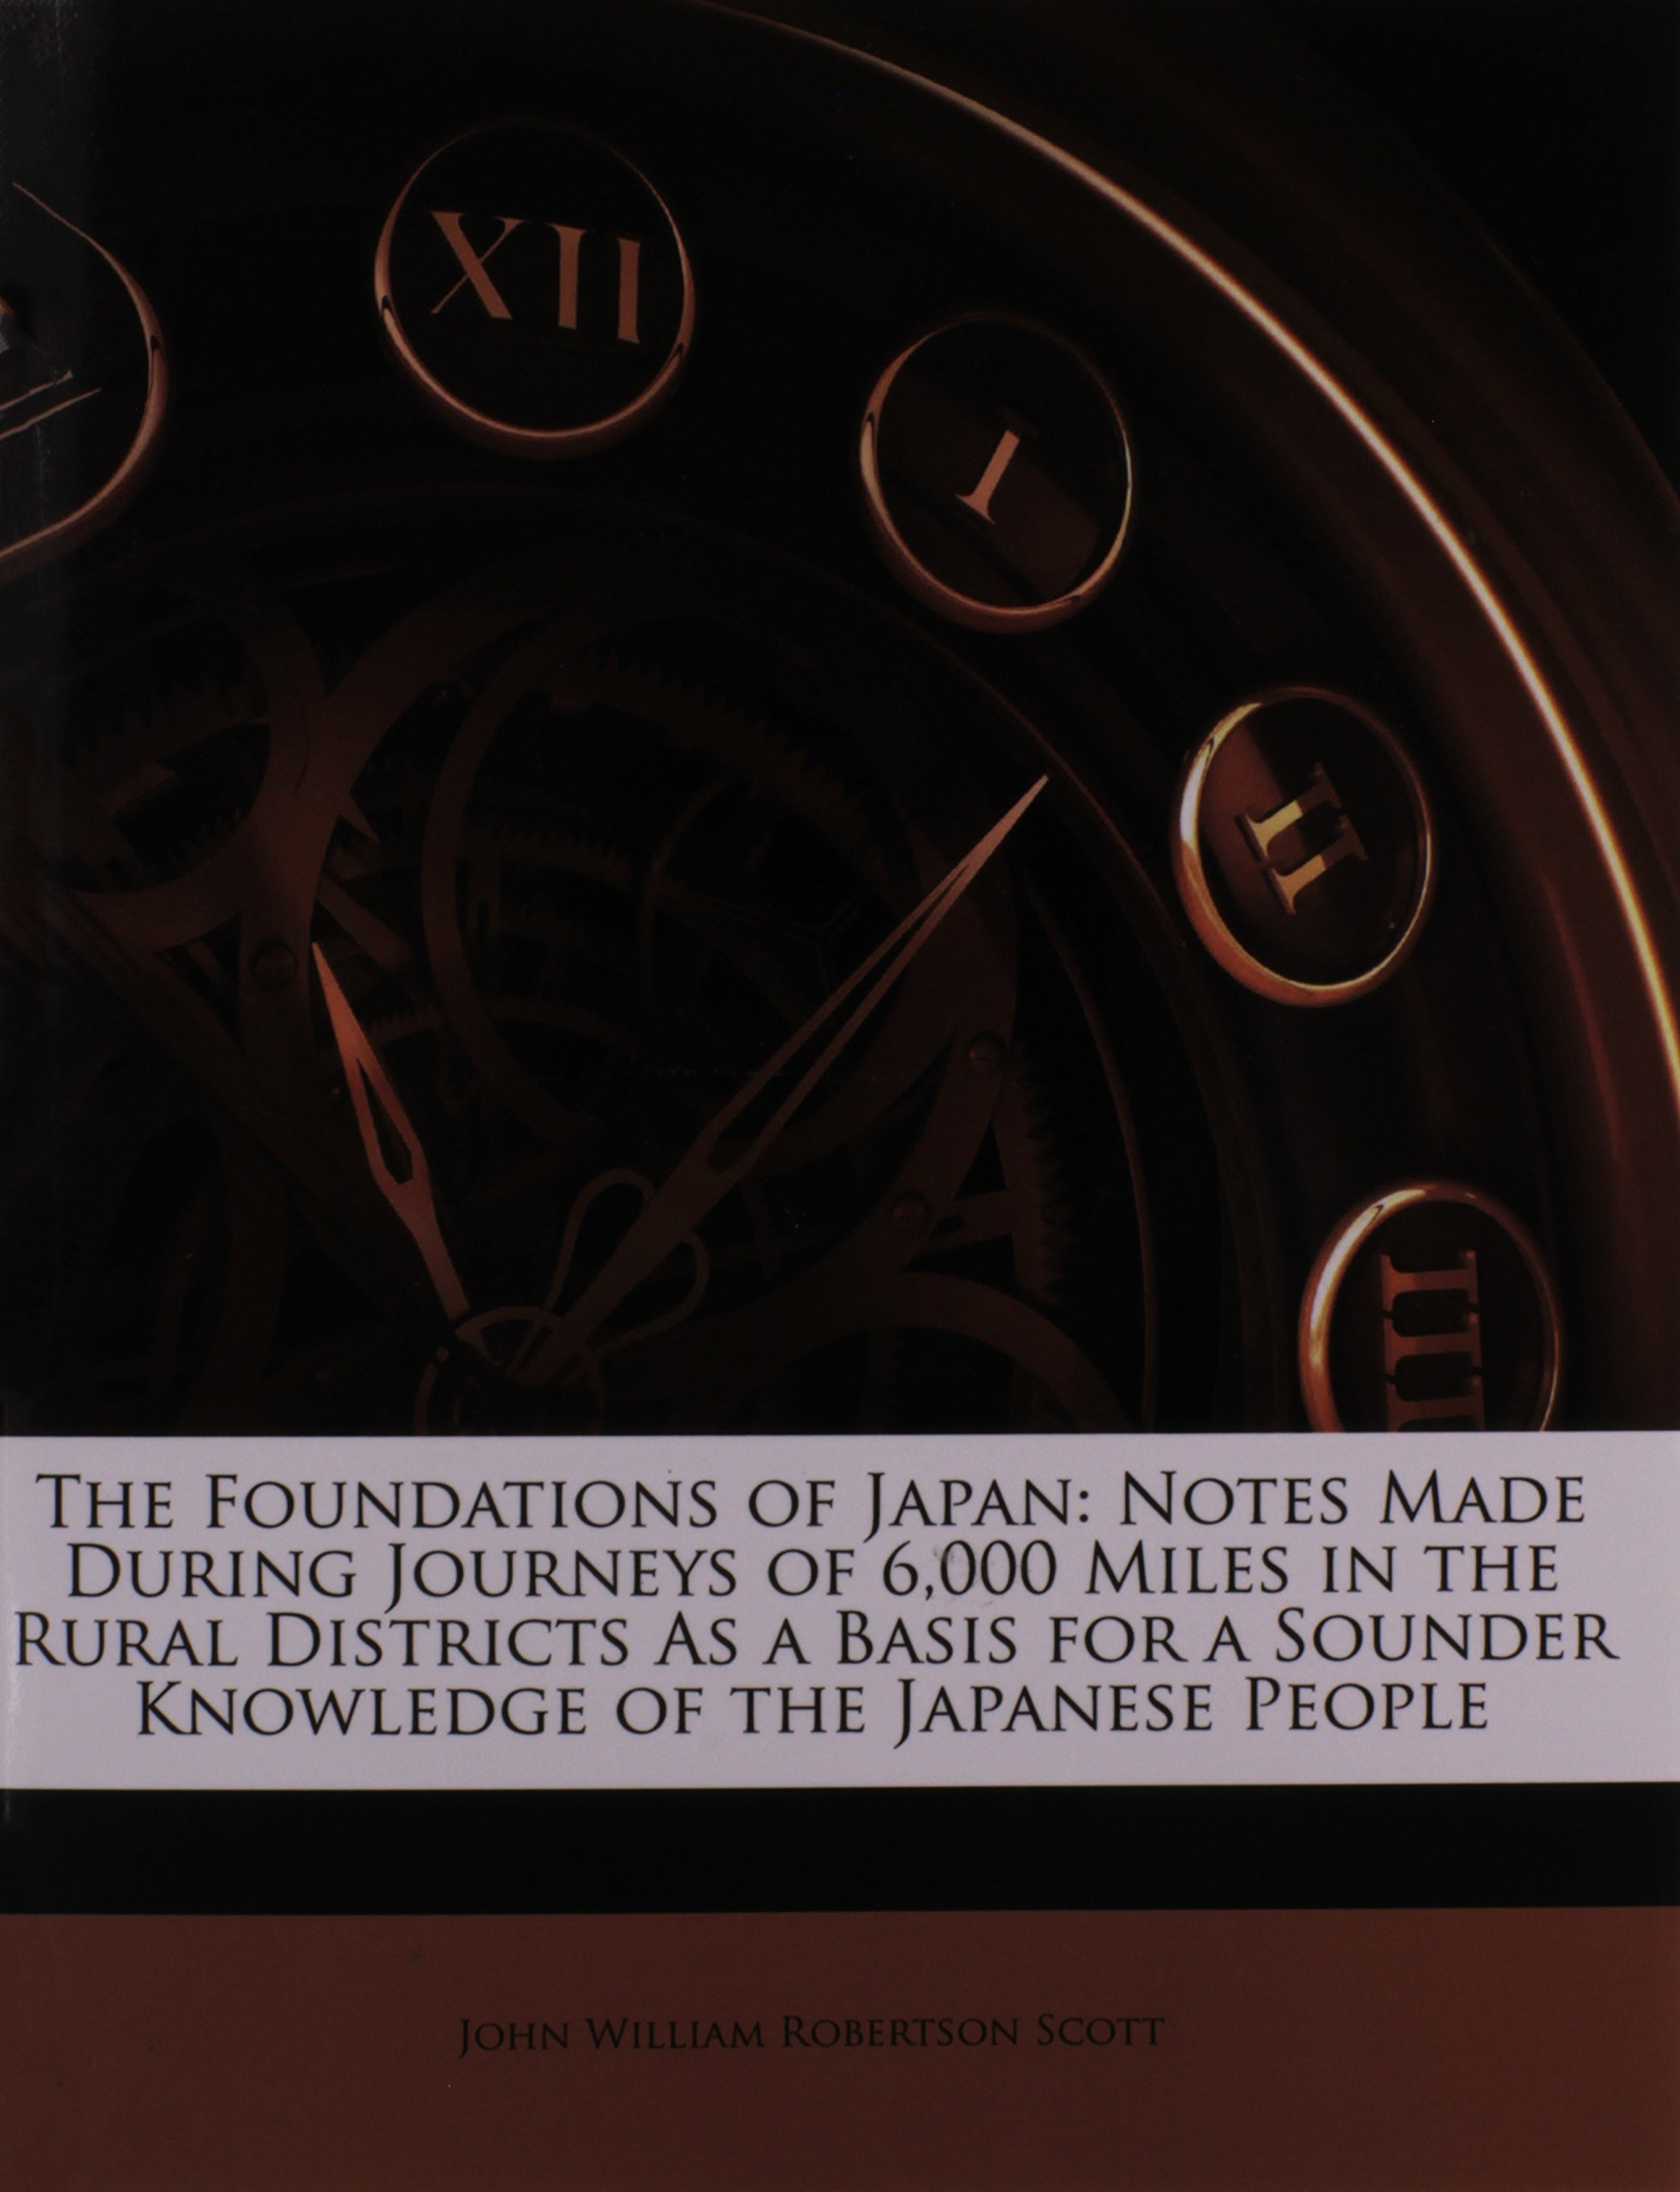 Read Online The Foundations of Japan: Notes Made During Journeys of 6,000 Miles in the Rural Districts As a Basis for a Sounder Knowledge of the Japanese People Text fb2 ebook